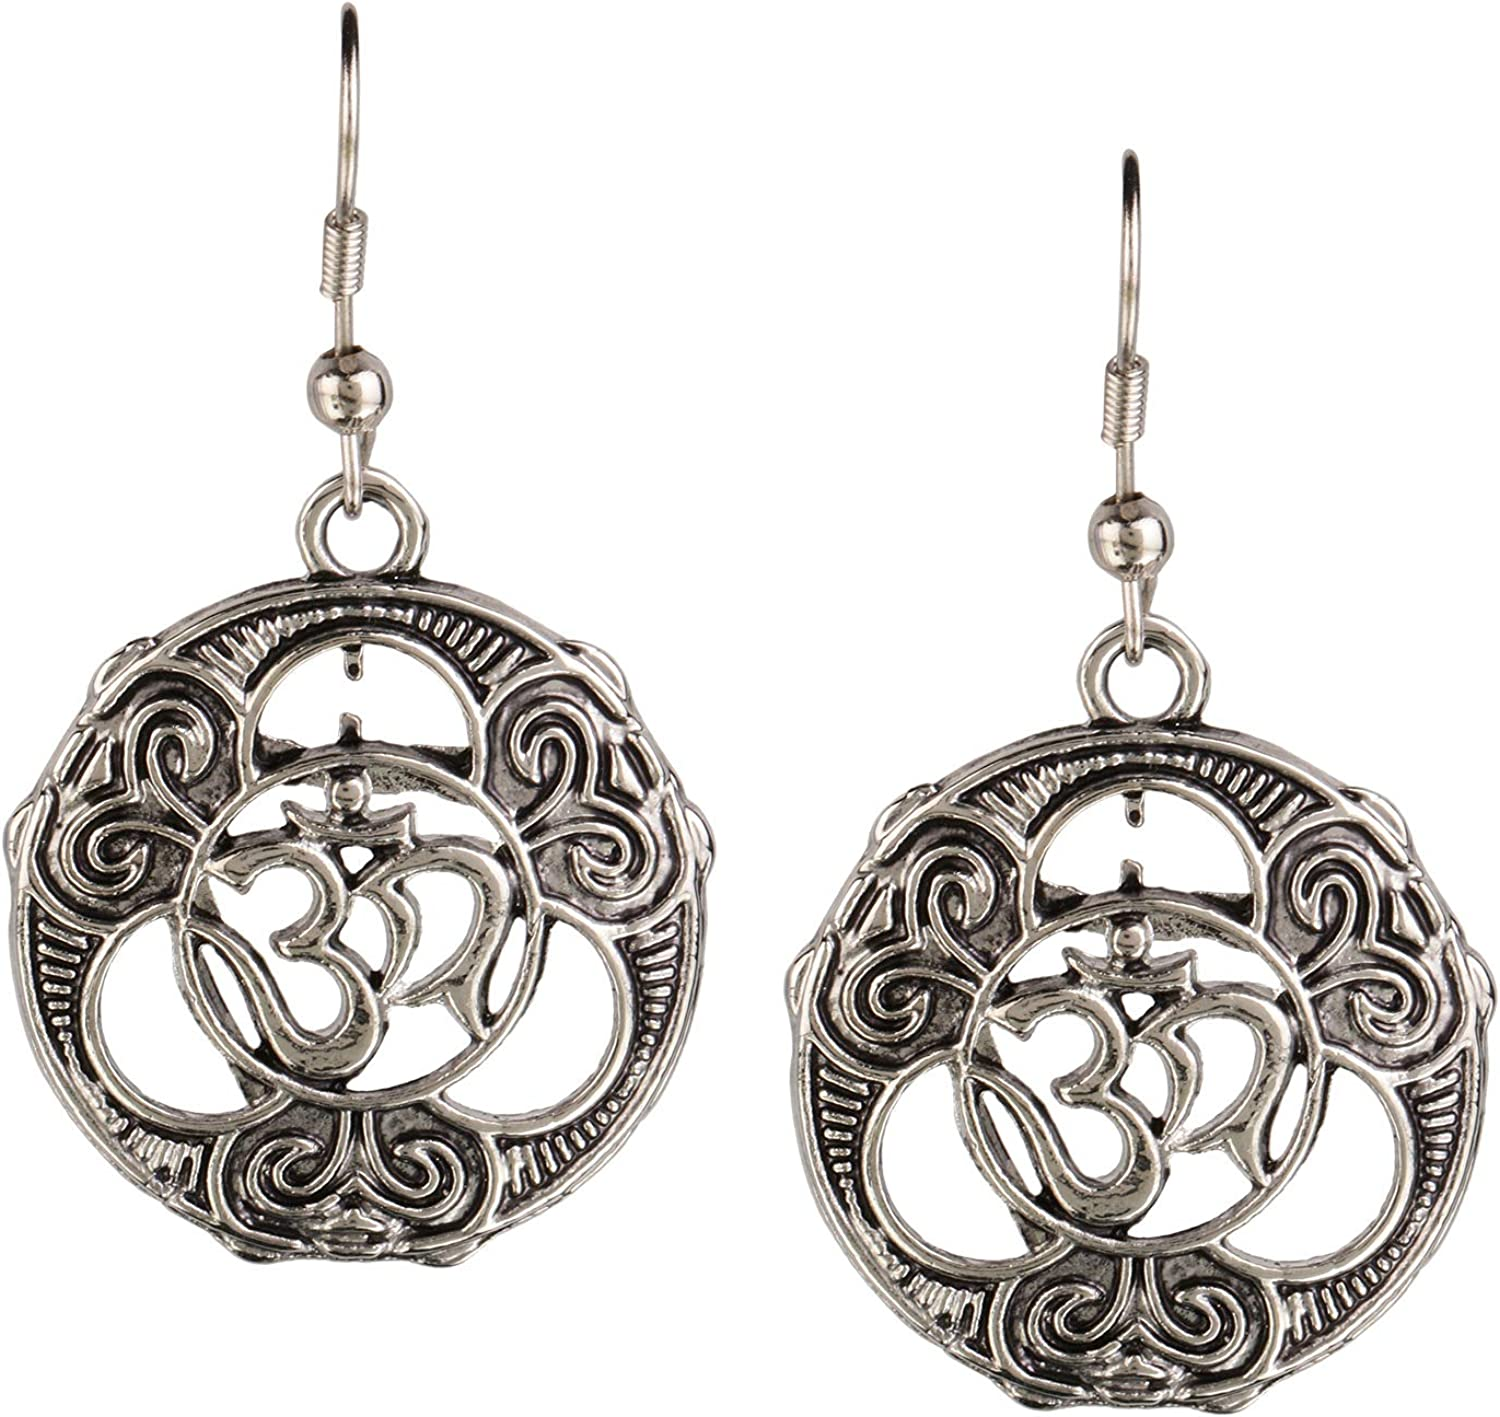 Efulgenz Boho Vintage Antique Ethnic Gypsy Tribal Indian Oxidized Silver OM Religious Dangle Earrings Jewelry